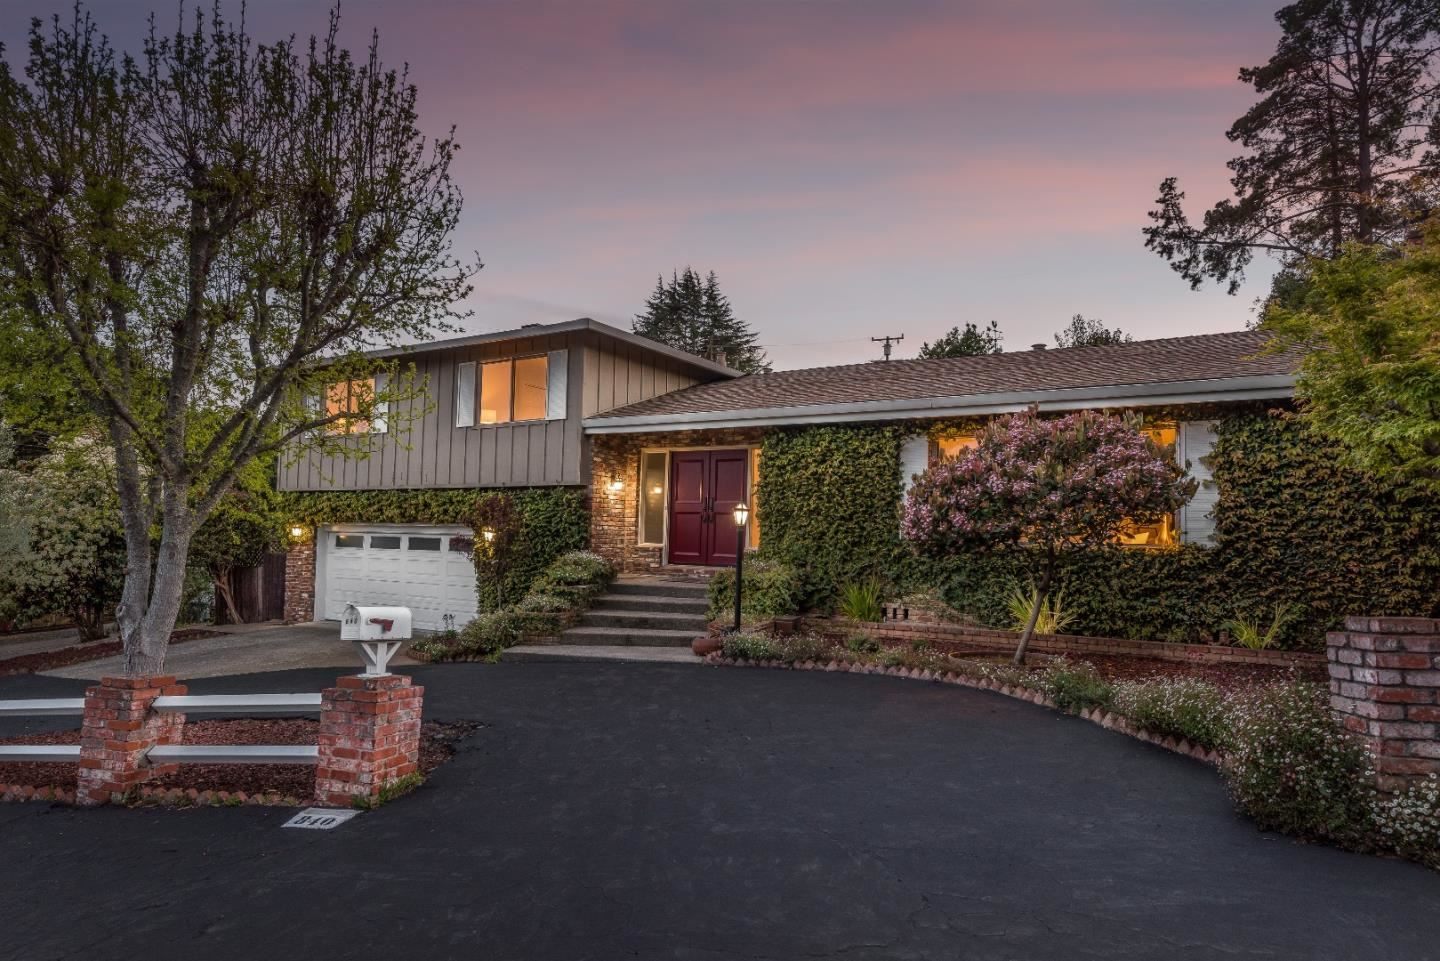 Photo for 840 HOLLY Road, BELMONT, CA 94002 (MLS # ML81838309)